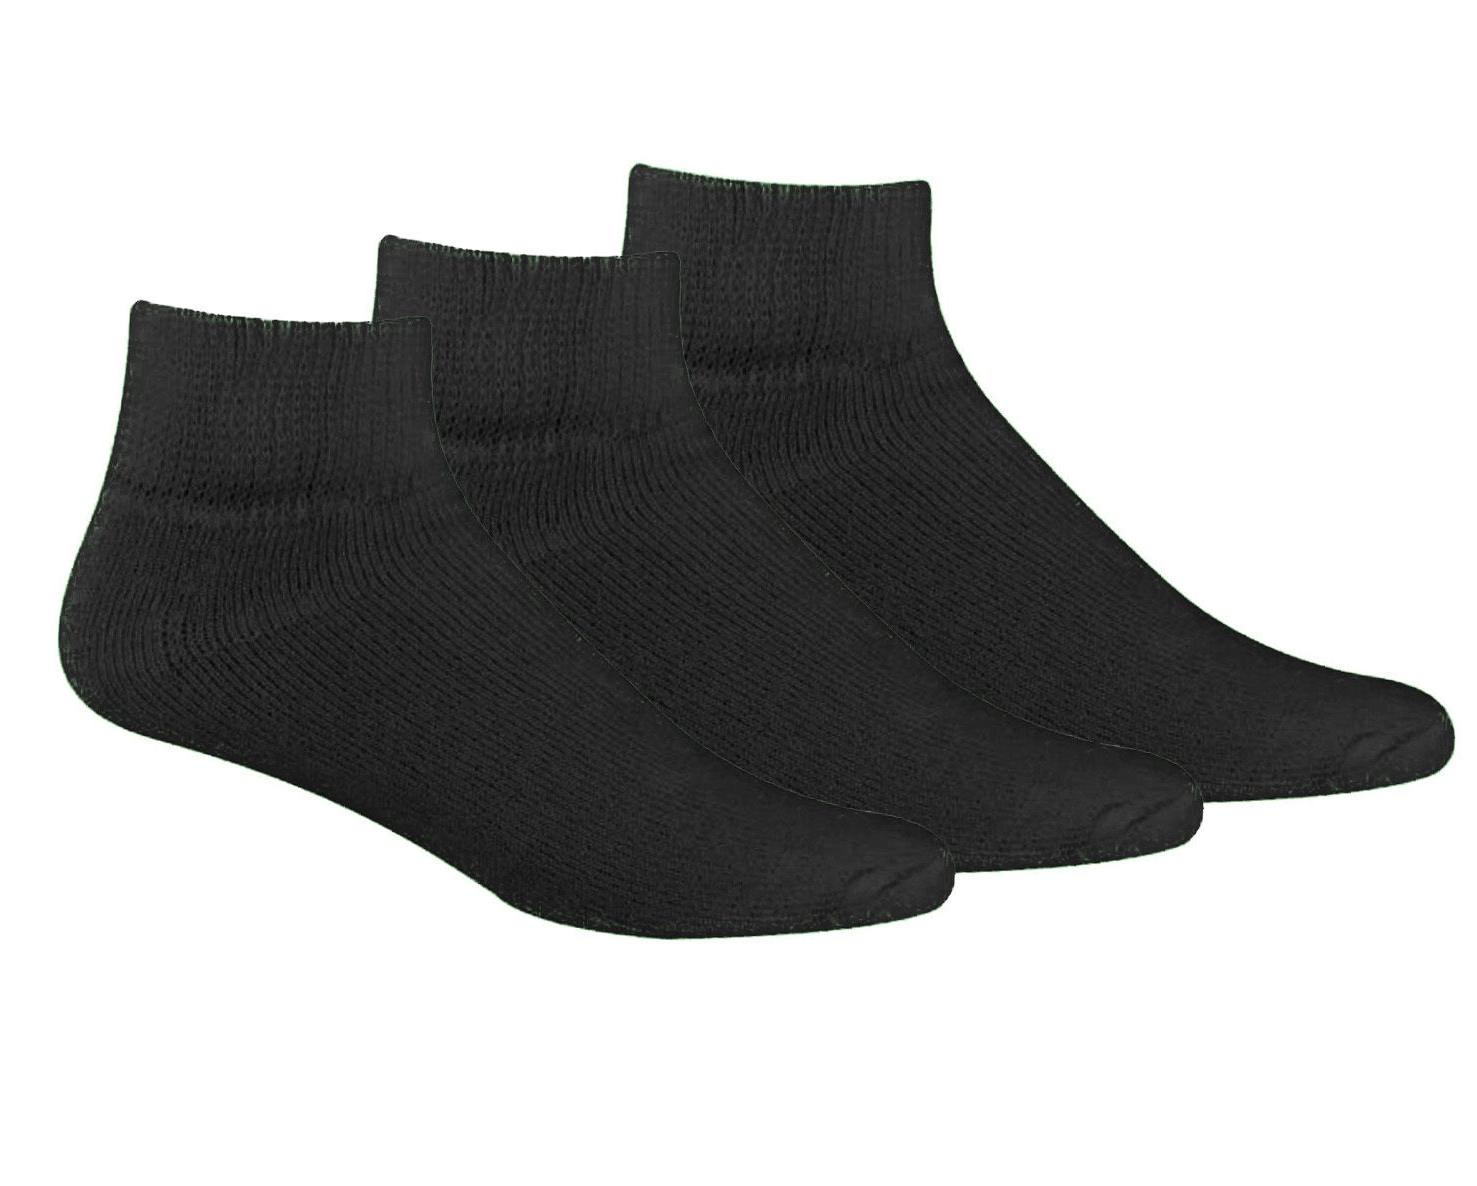 Men's Big and Tall Diabetic Non-Binding Comfort Top Ankle Qu